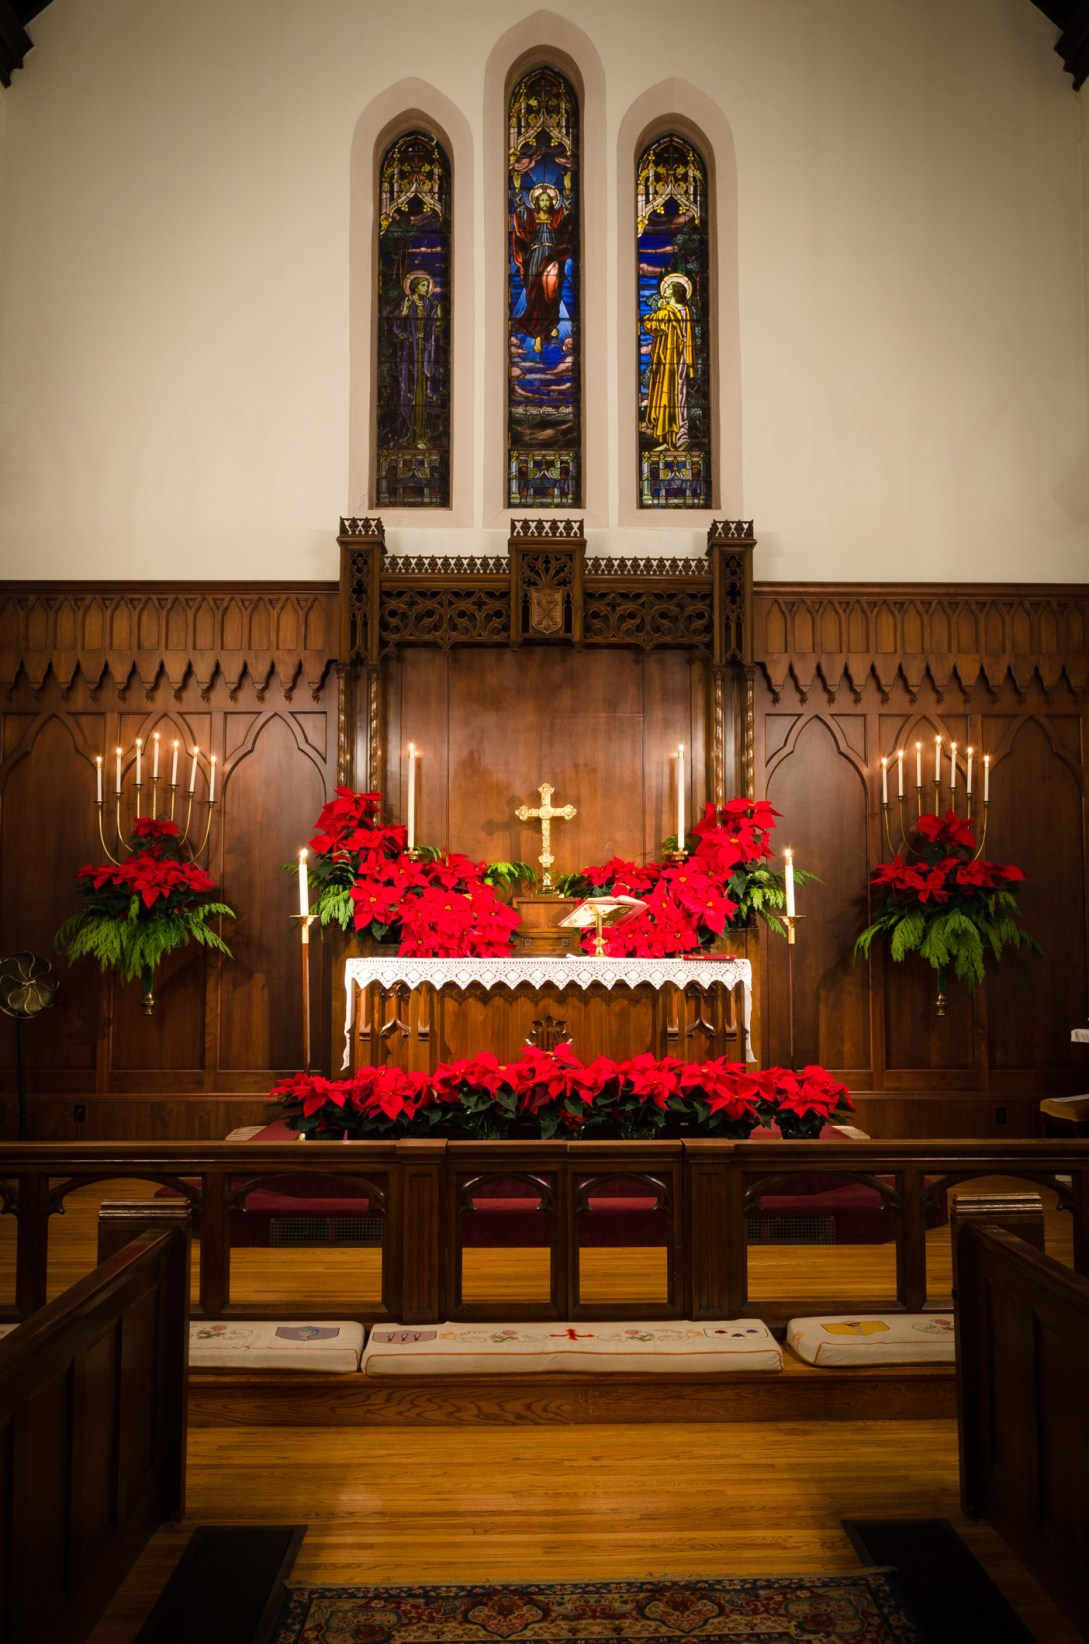 Altar & Flowers. Copyright © 2014 Gary Allman, all rights reserved.